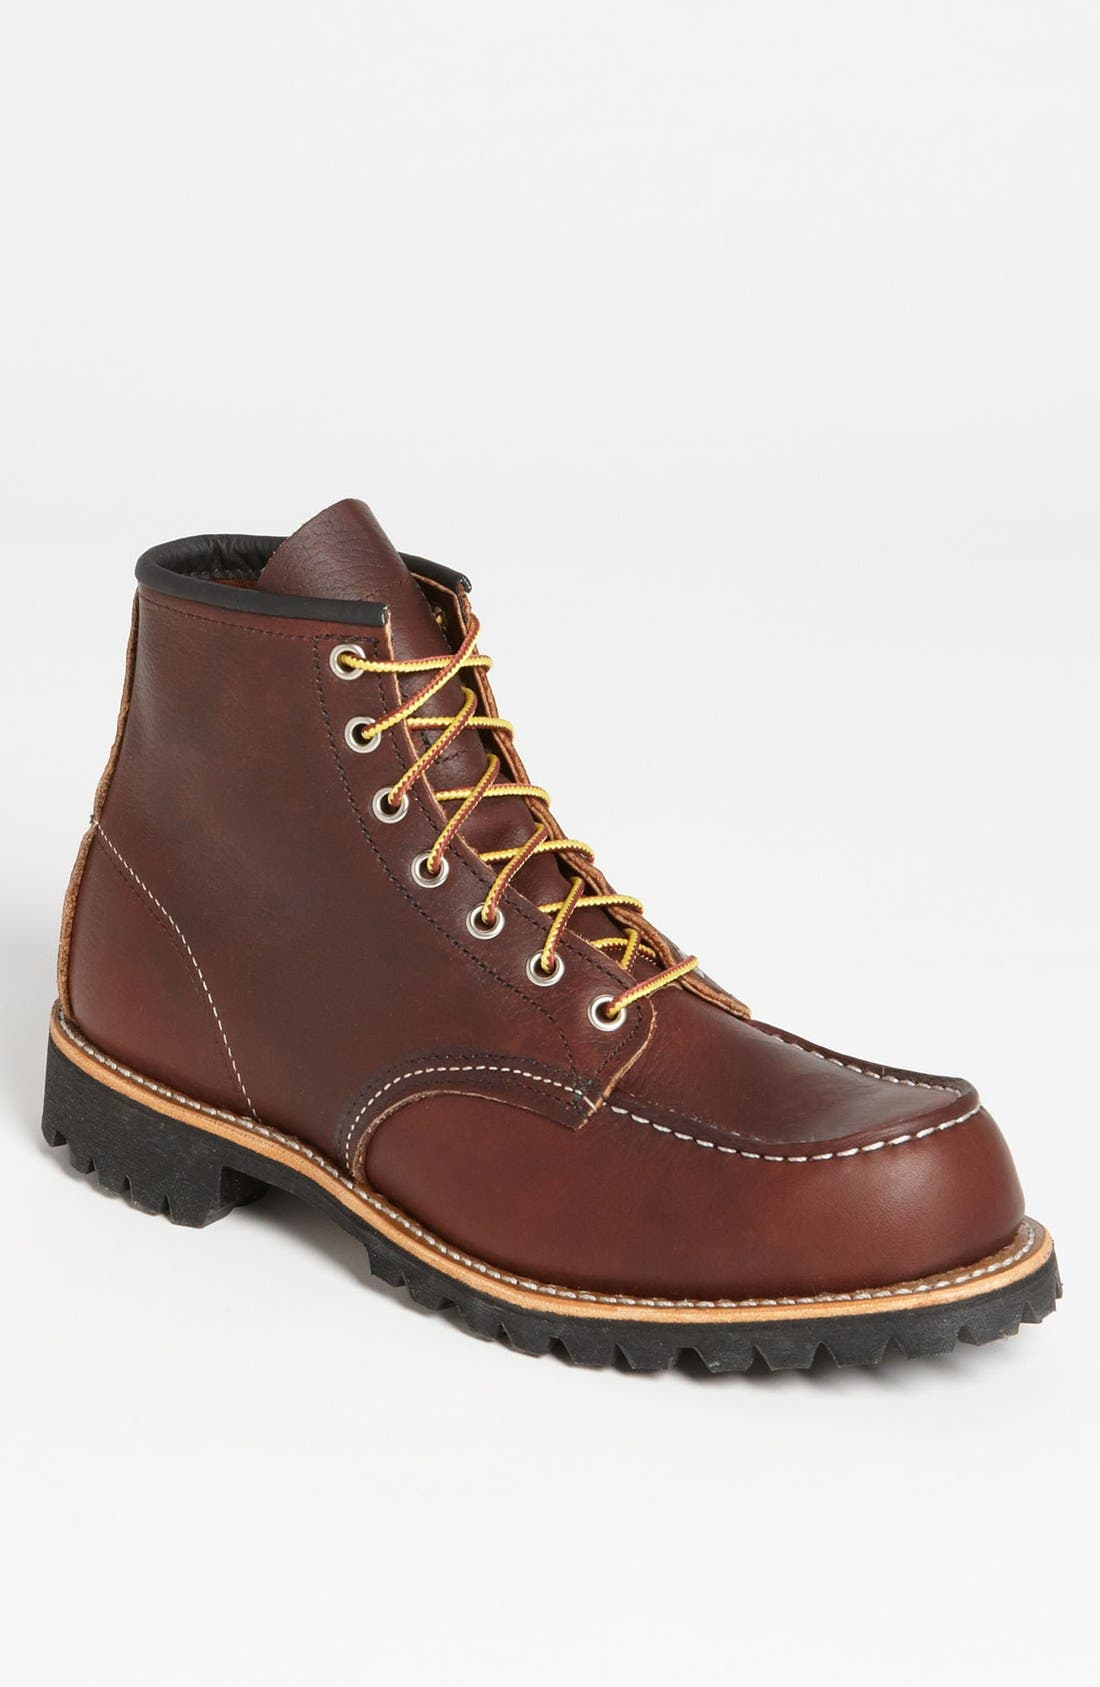 Alternate Image 1 Selected - Red Wing Moc Toe Boot (Online Only)